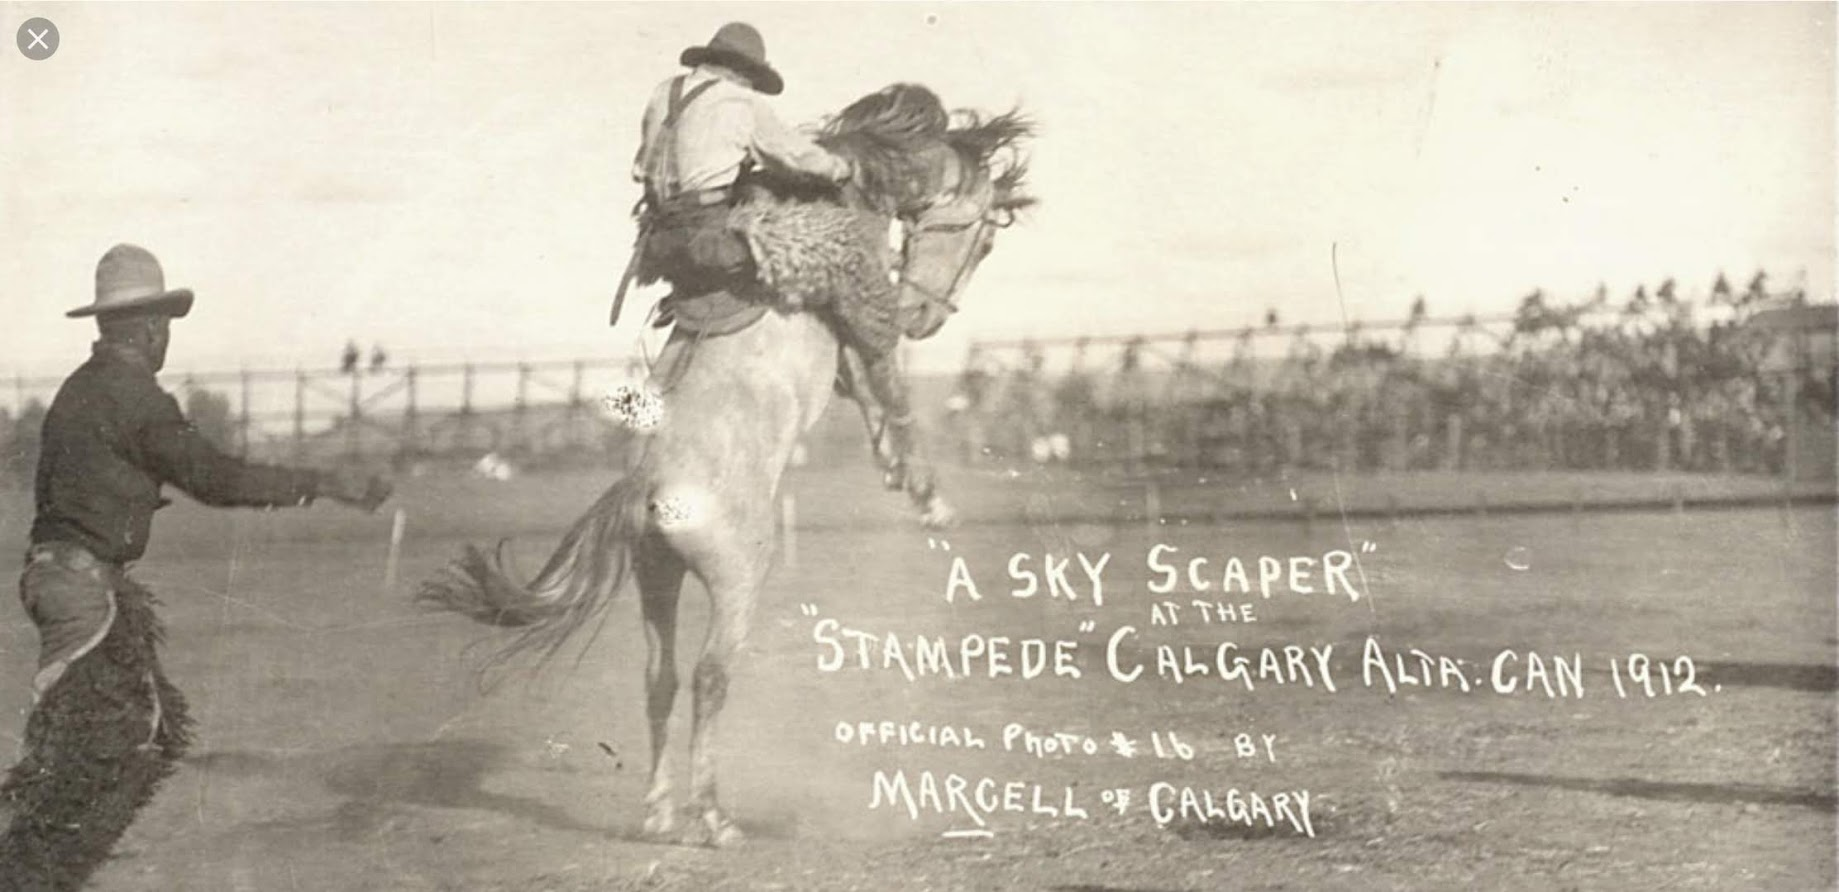 A Sky scaper foreshadows Calgary become a skyscraper city by the end of the 20th century?